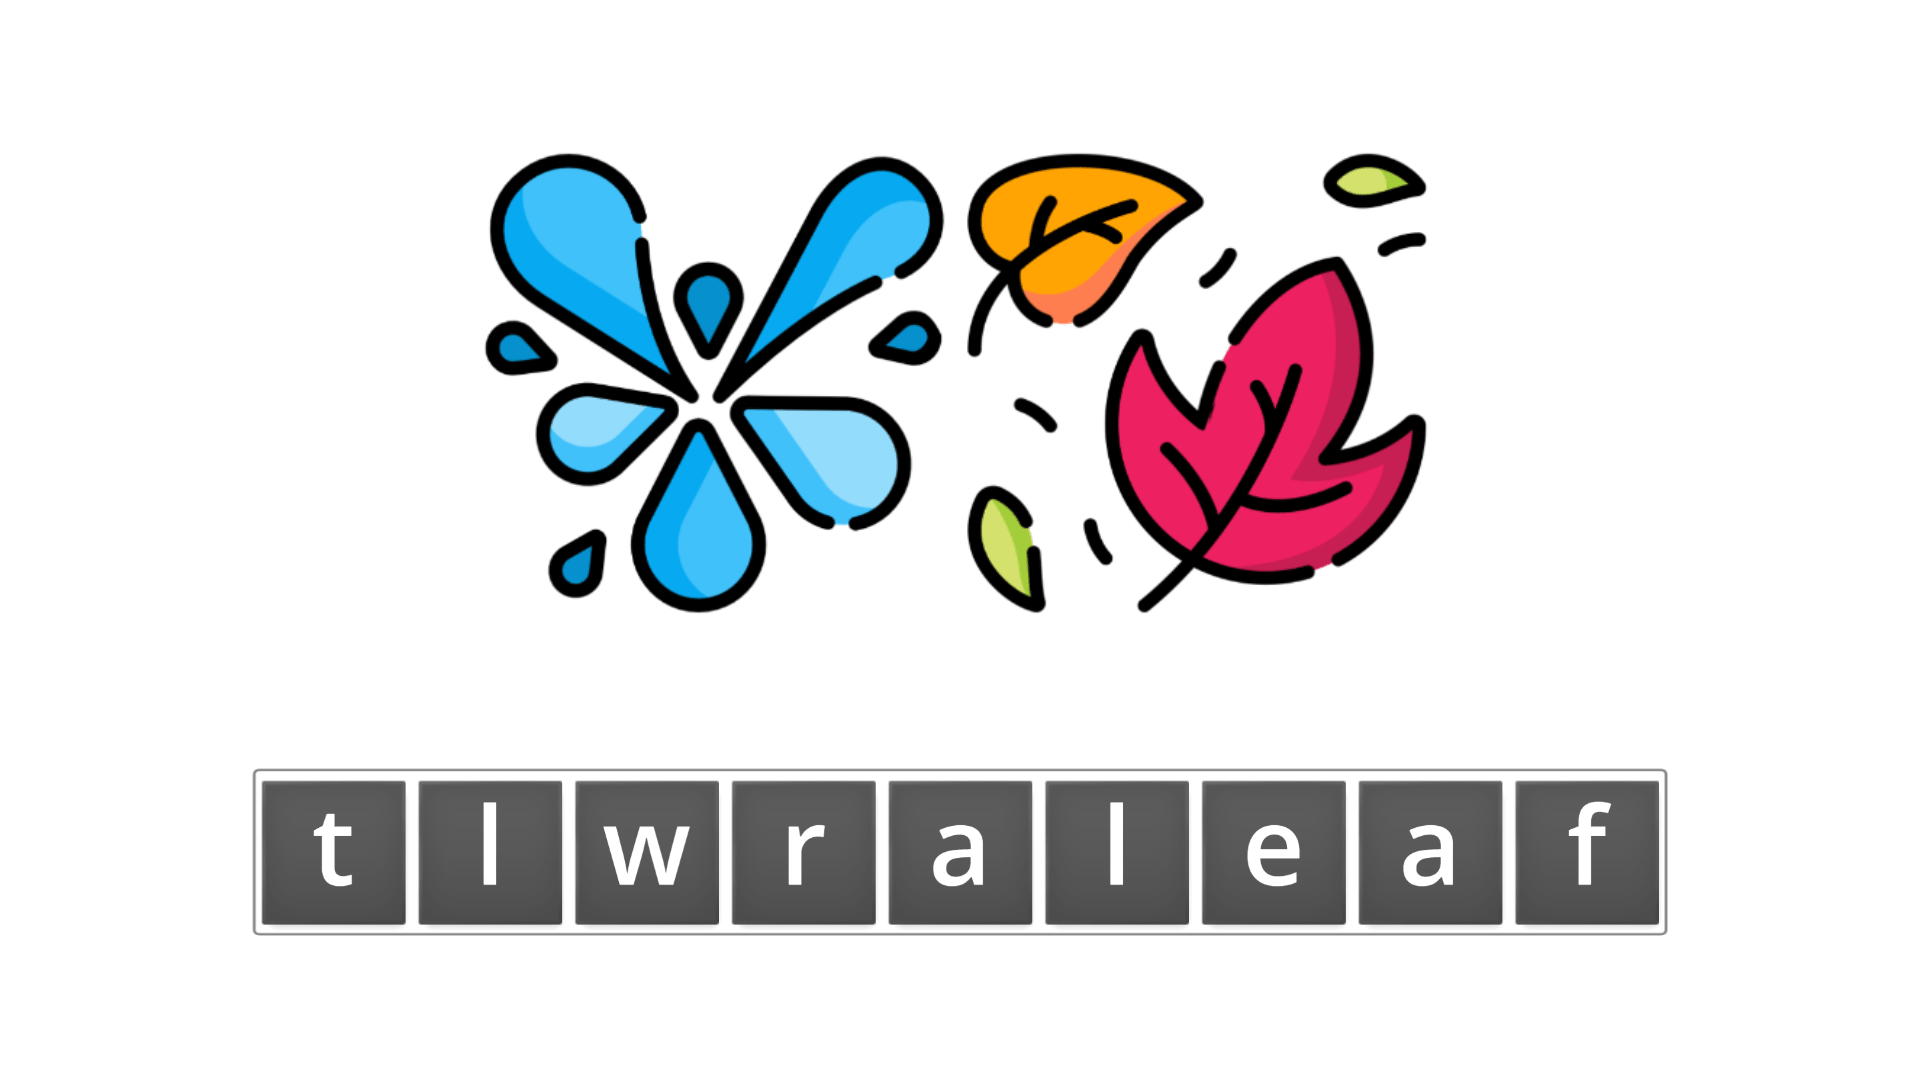 esl resources - flashcards - compound nouns  - unscramble - waterfall